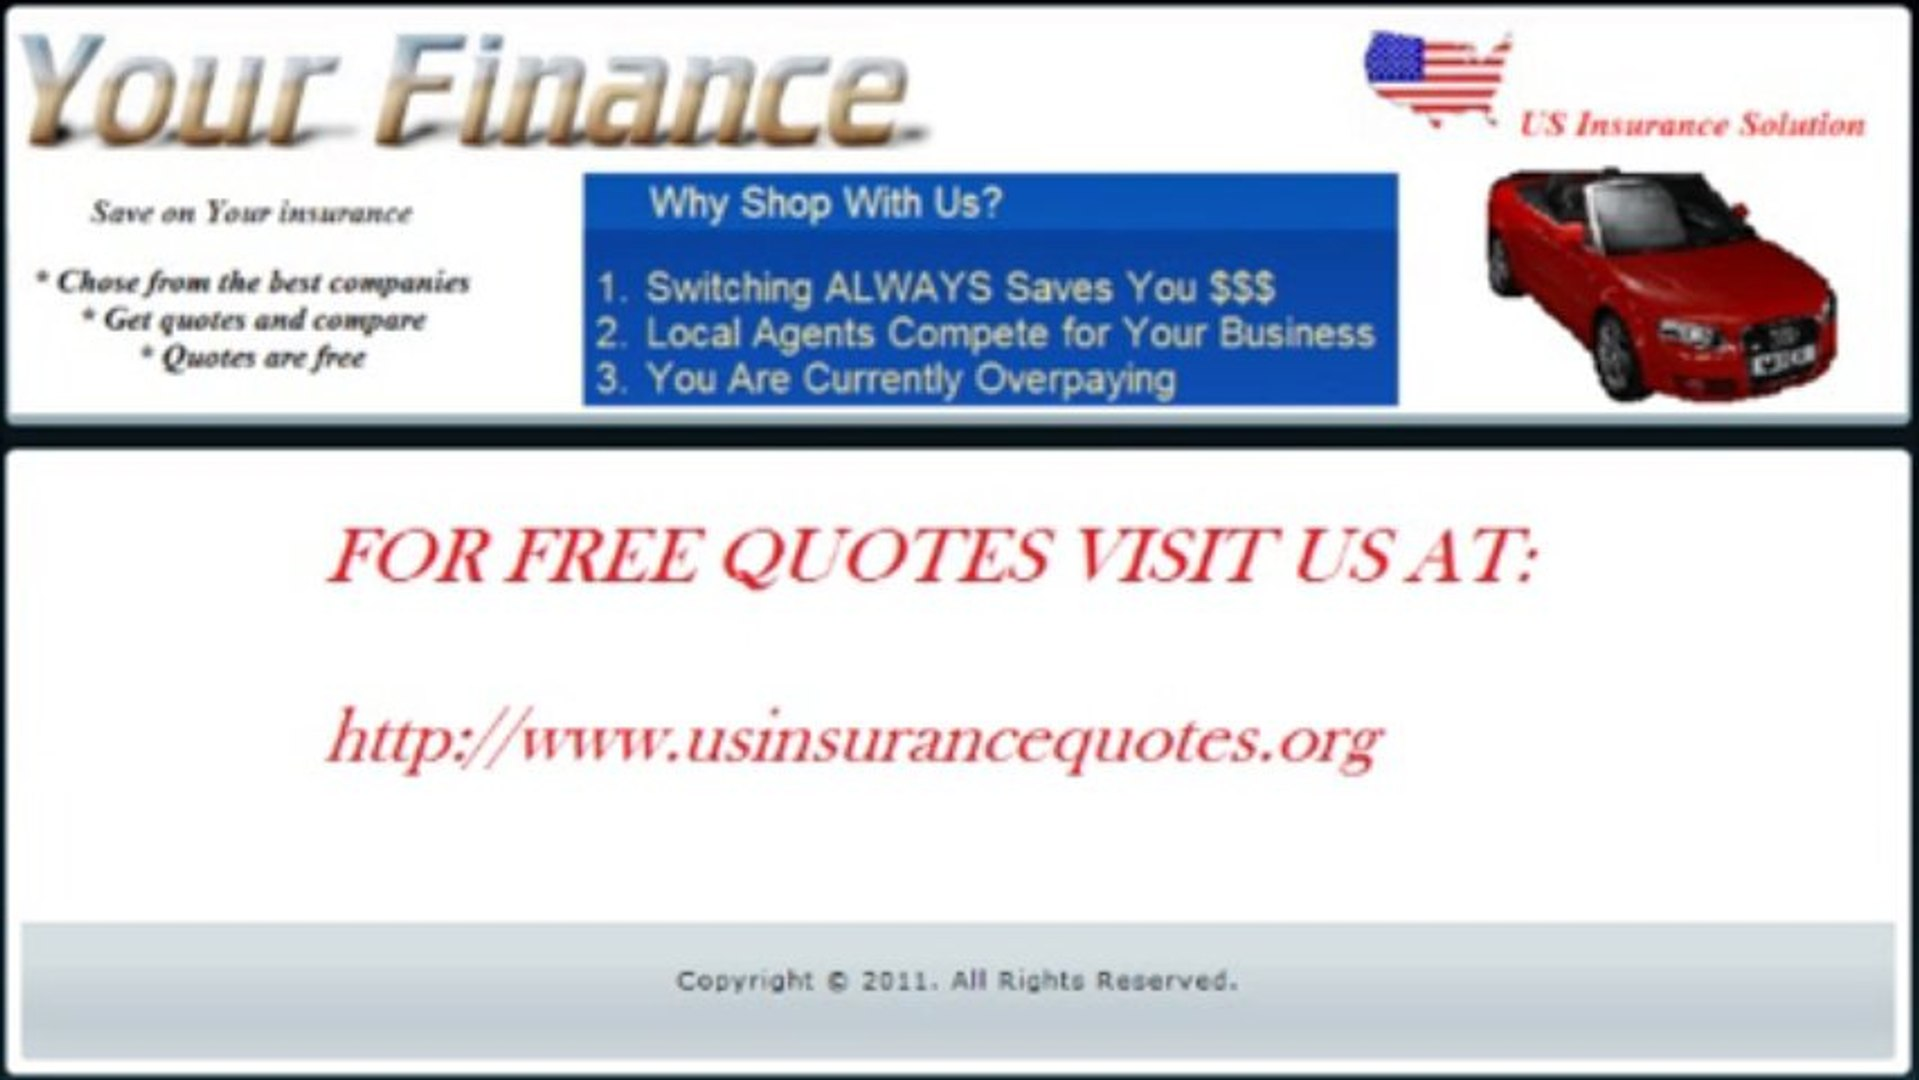 USINSURANCEQUOTES.ORG - Where can you get home insurance after your policy has been cancelled due to